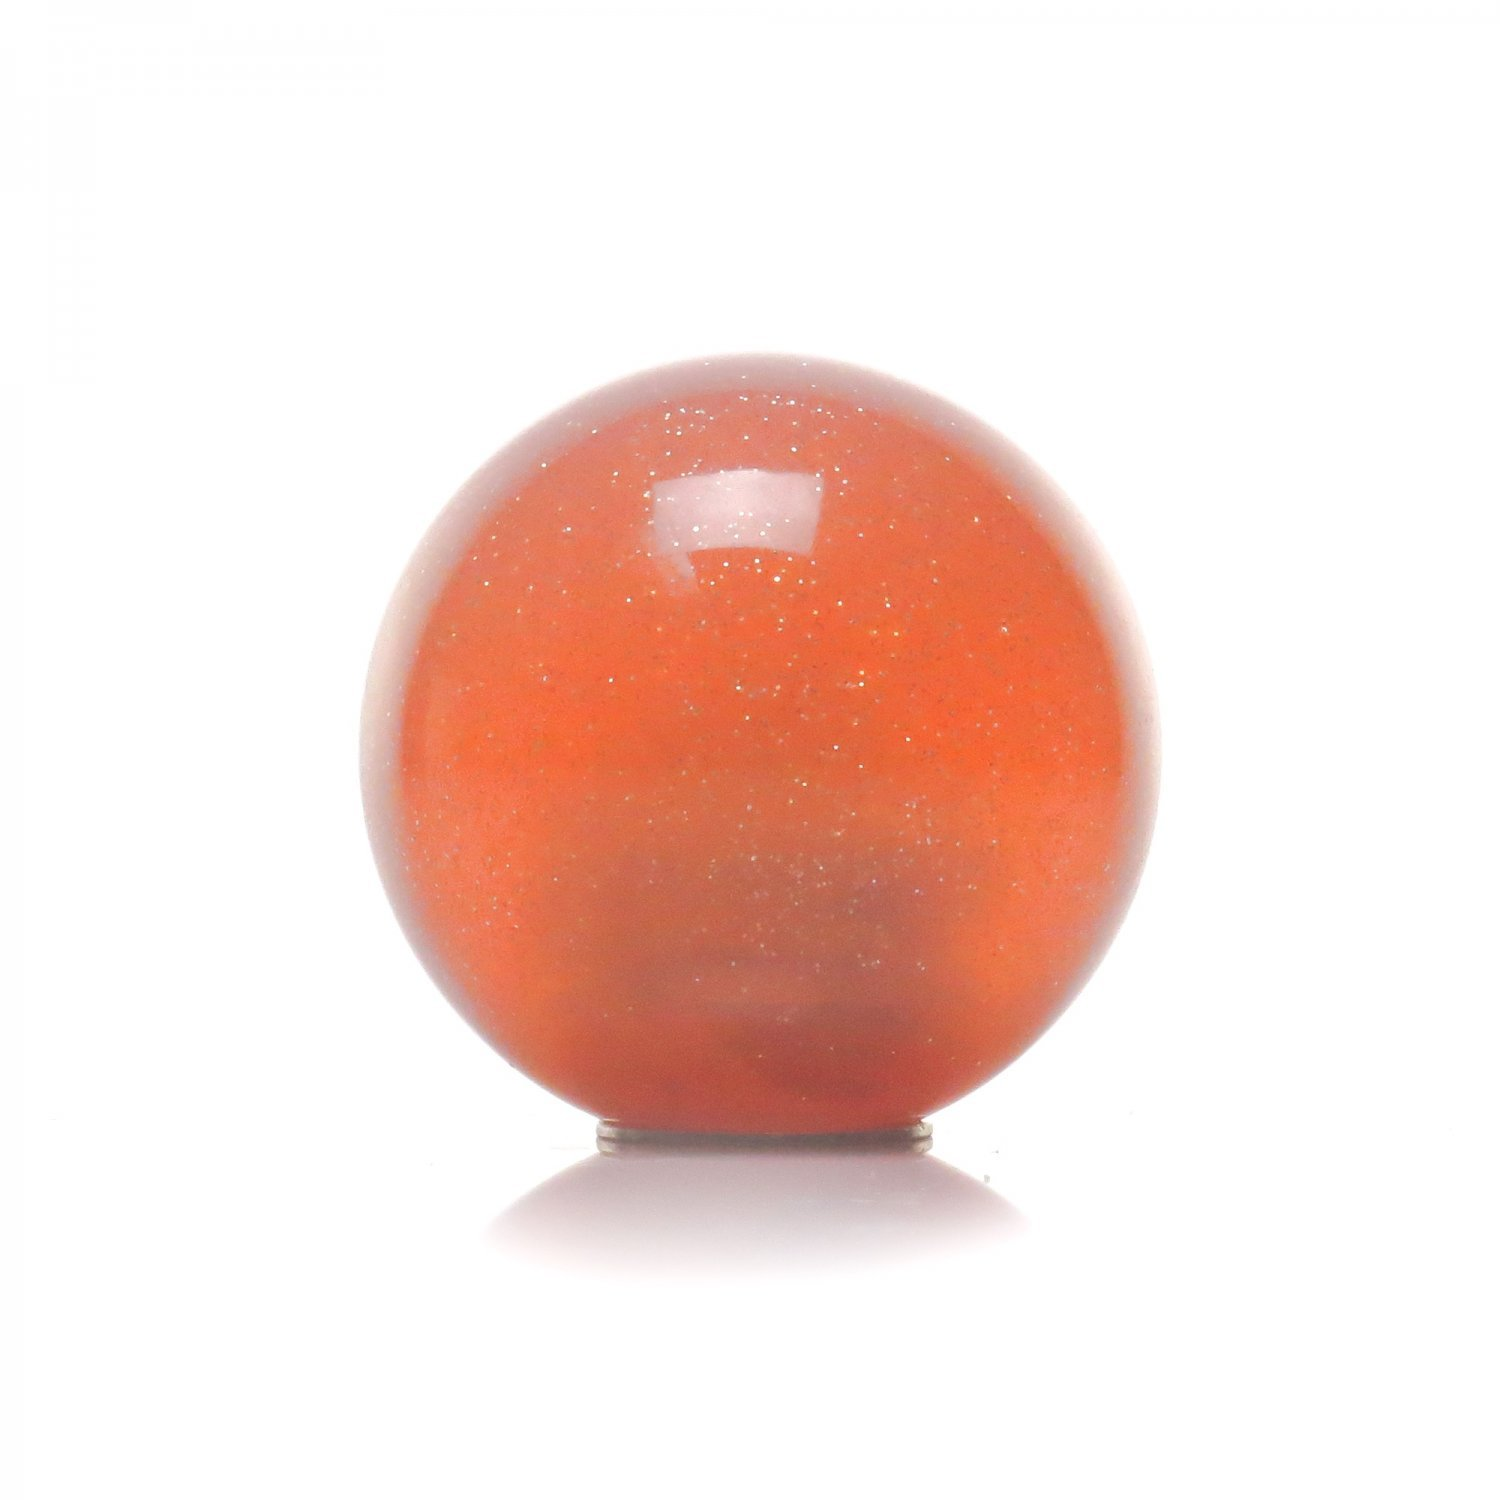 American Shifter 43109 Orange Metal Flake Shift Knob with 16mm x 1.5 Insert Pink Turbo Lag Swag